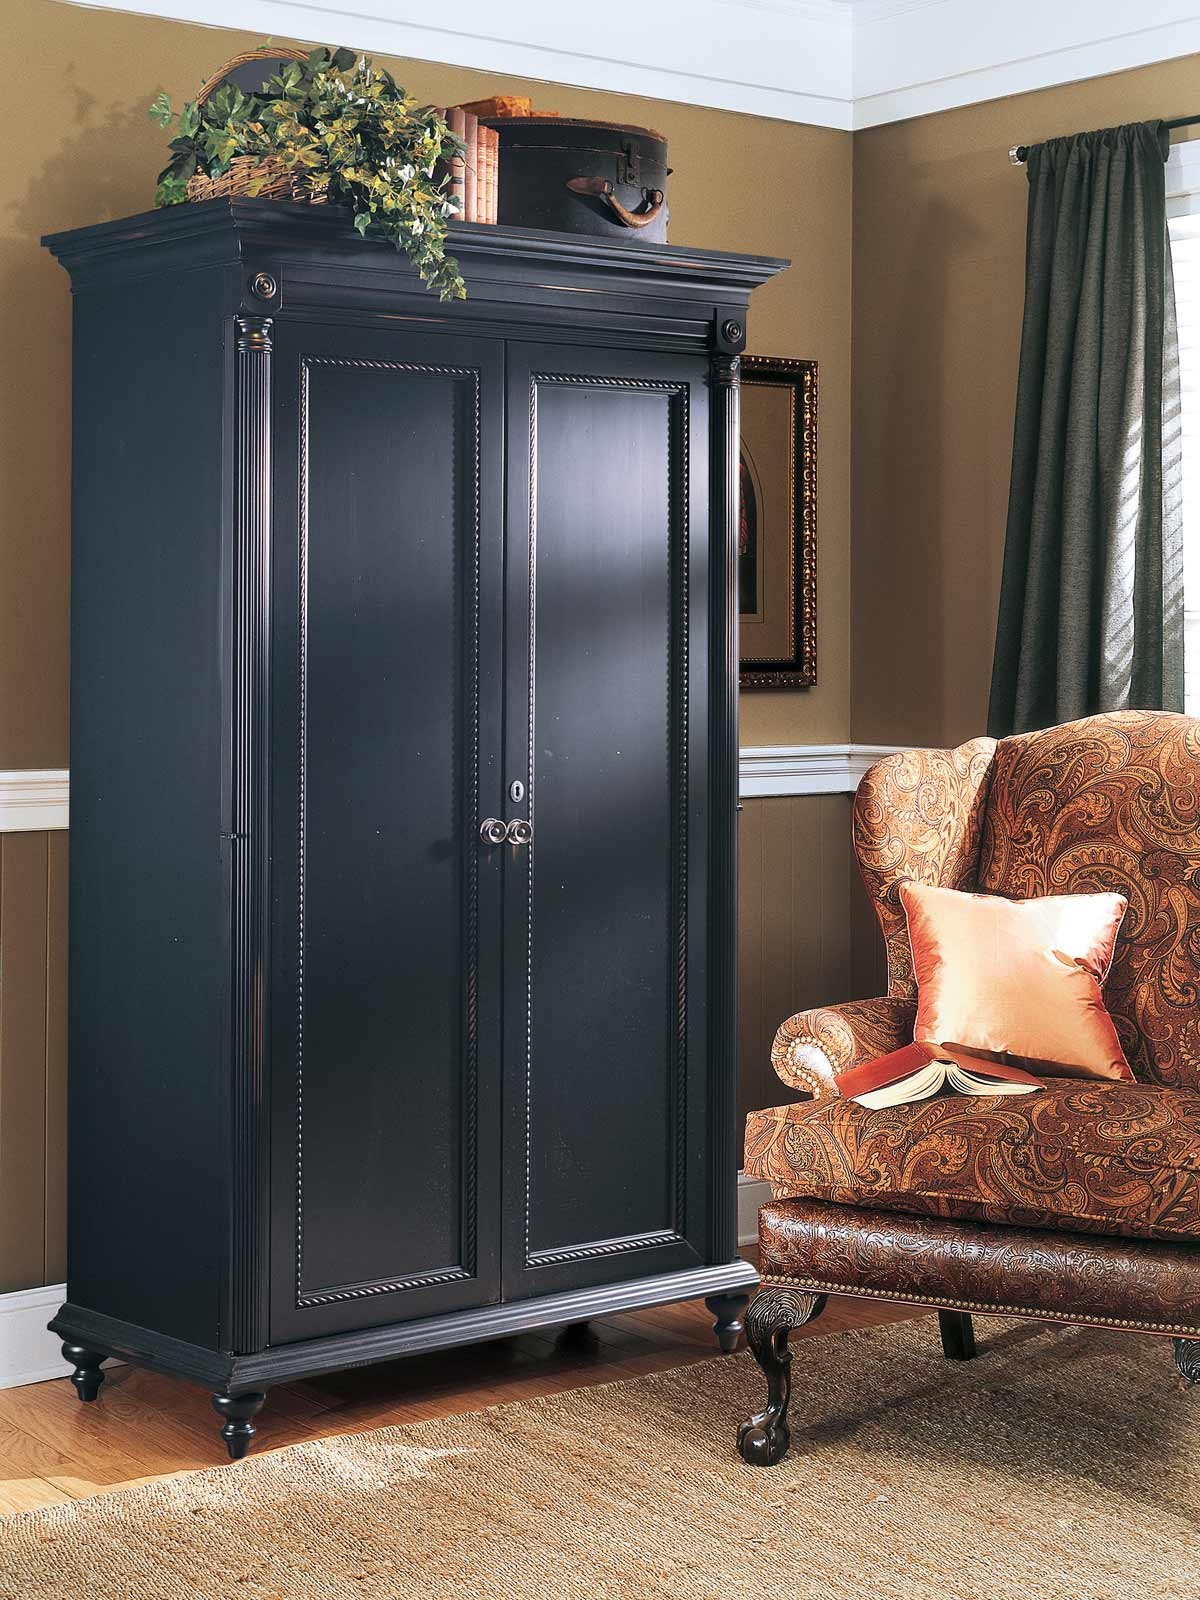 Durham furniture savile row armoire in antique black 980 160 antb media gallery